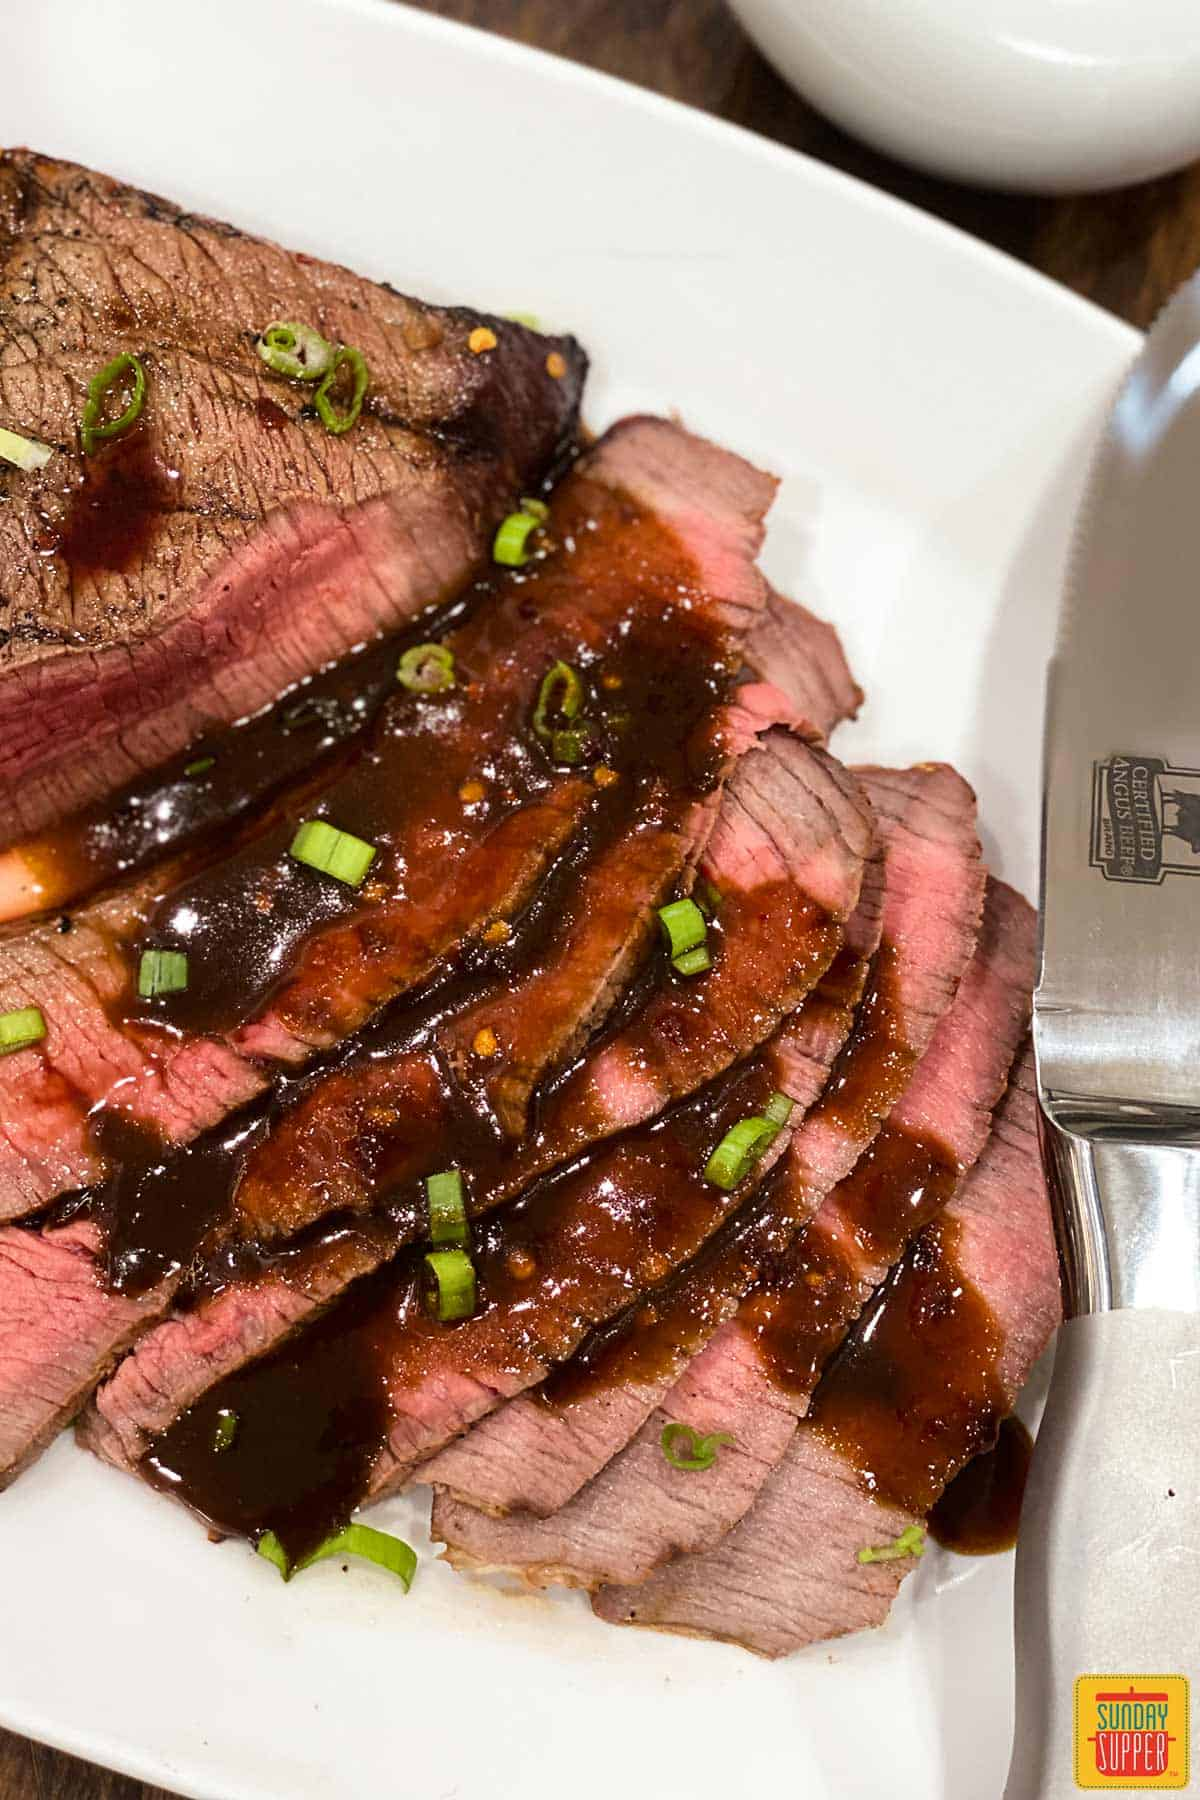 Slices of London broil on a plate with sauce